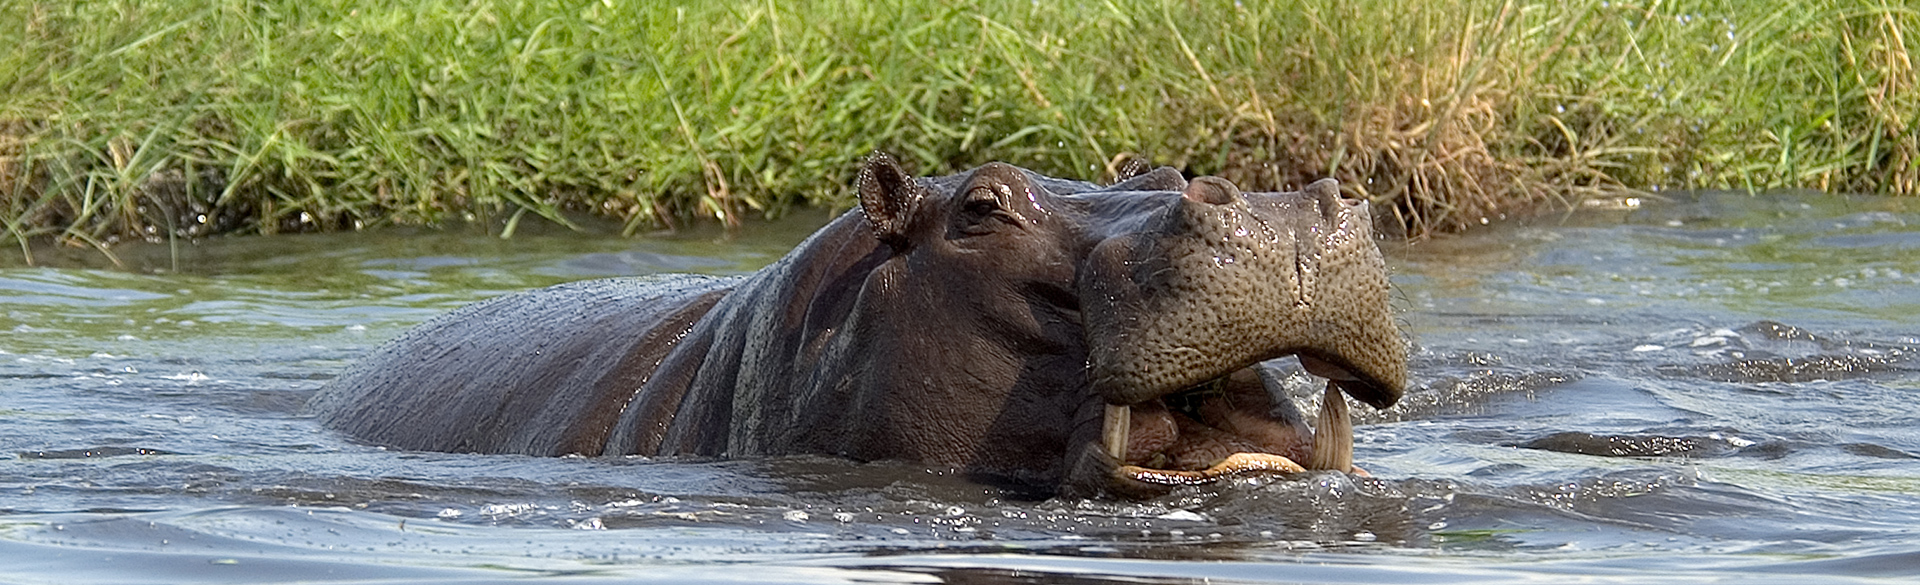 Chobe hippo courtesy Brent Williamson